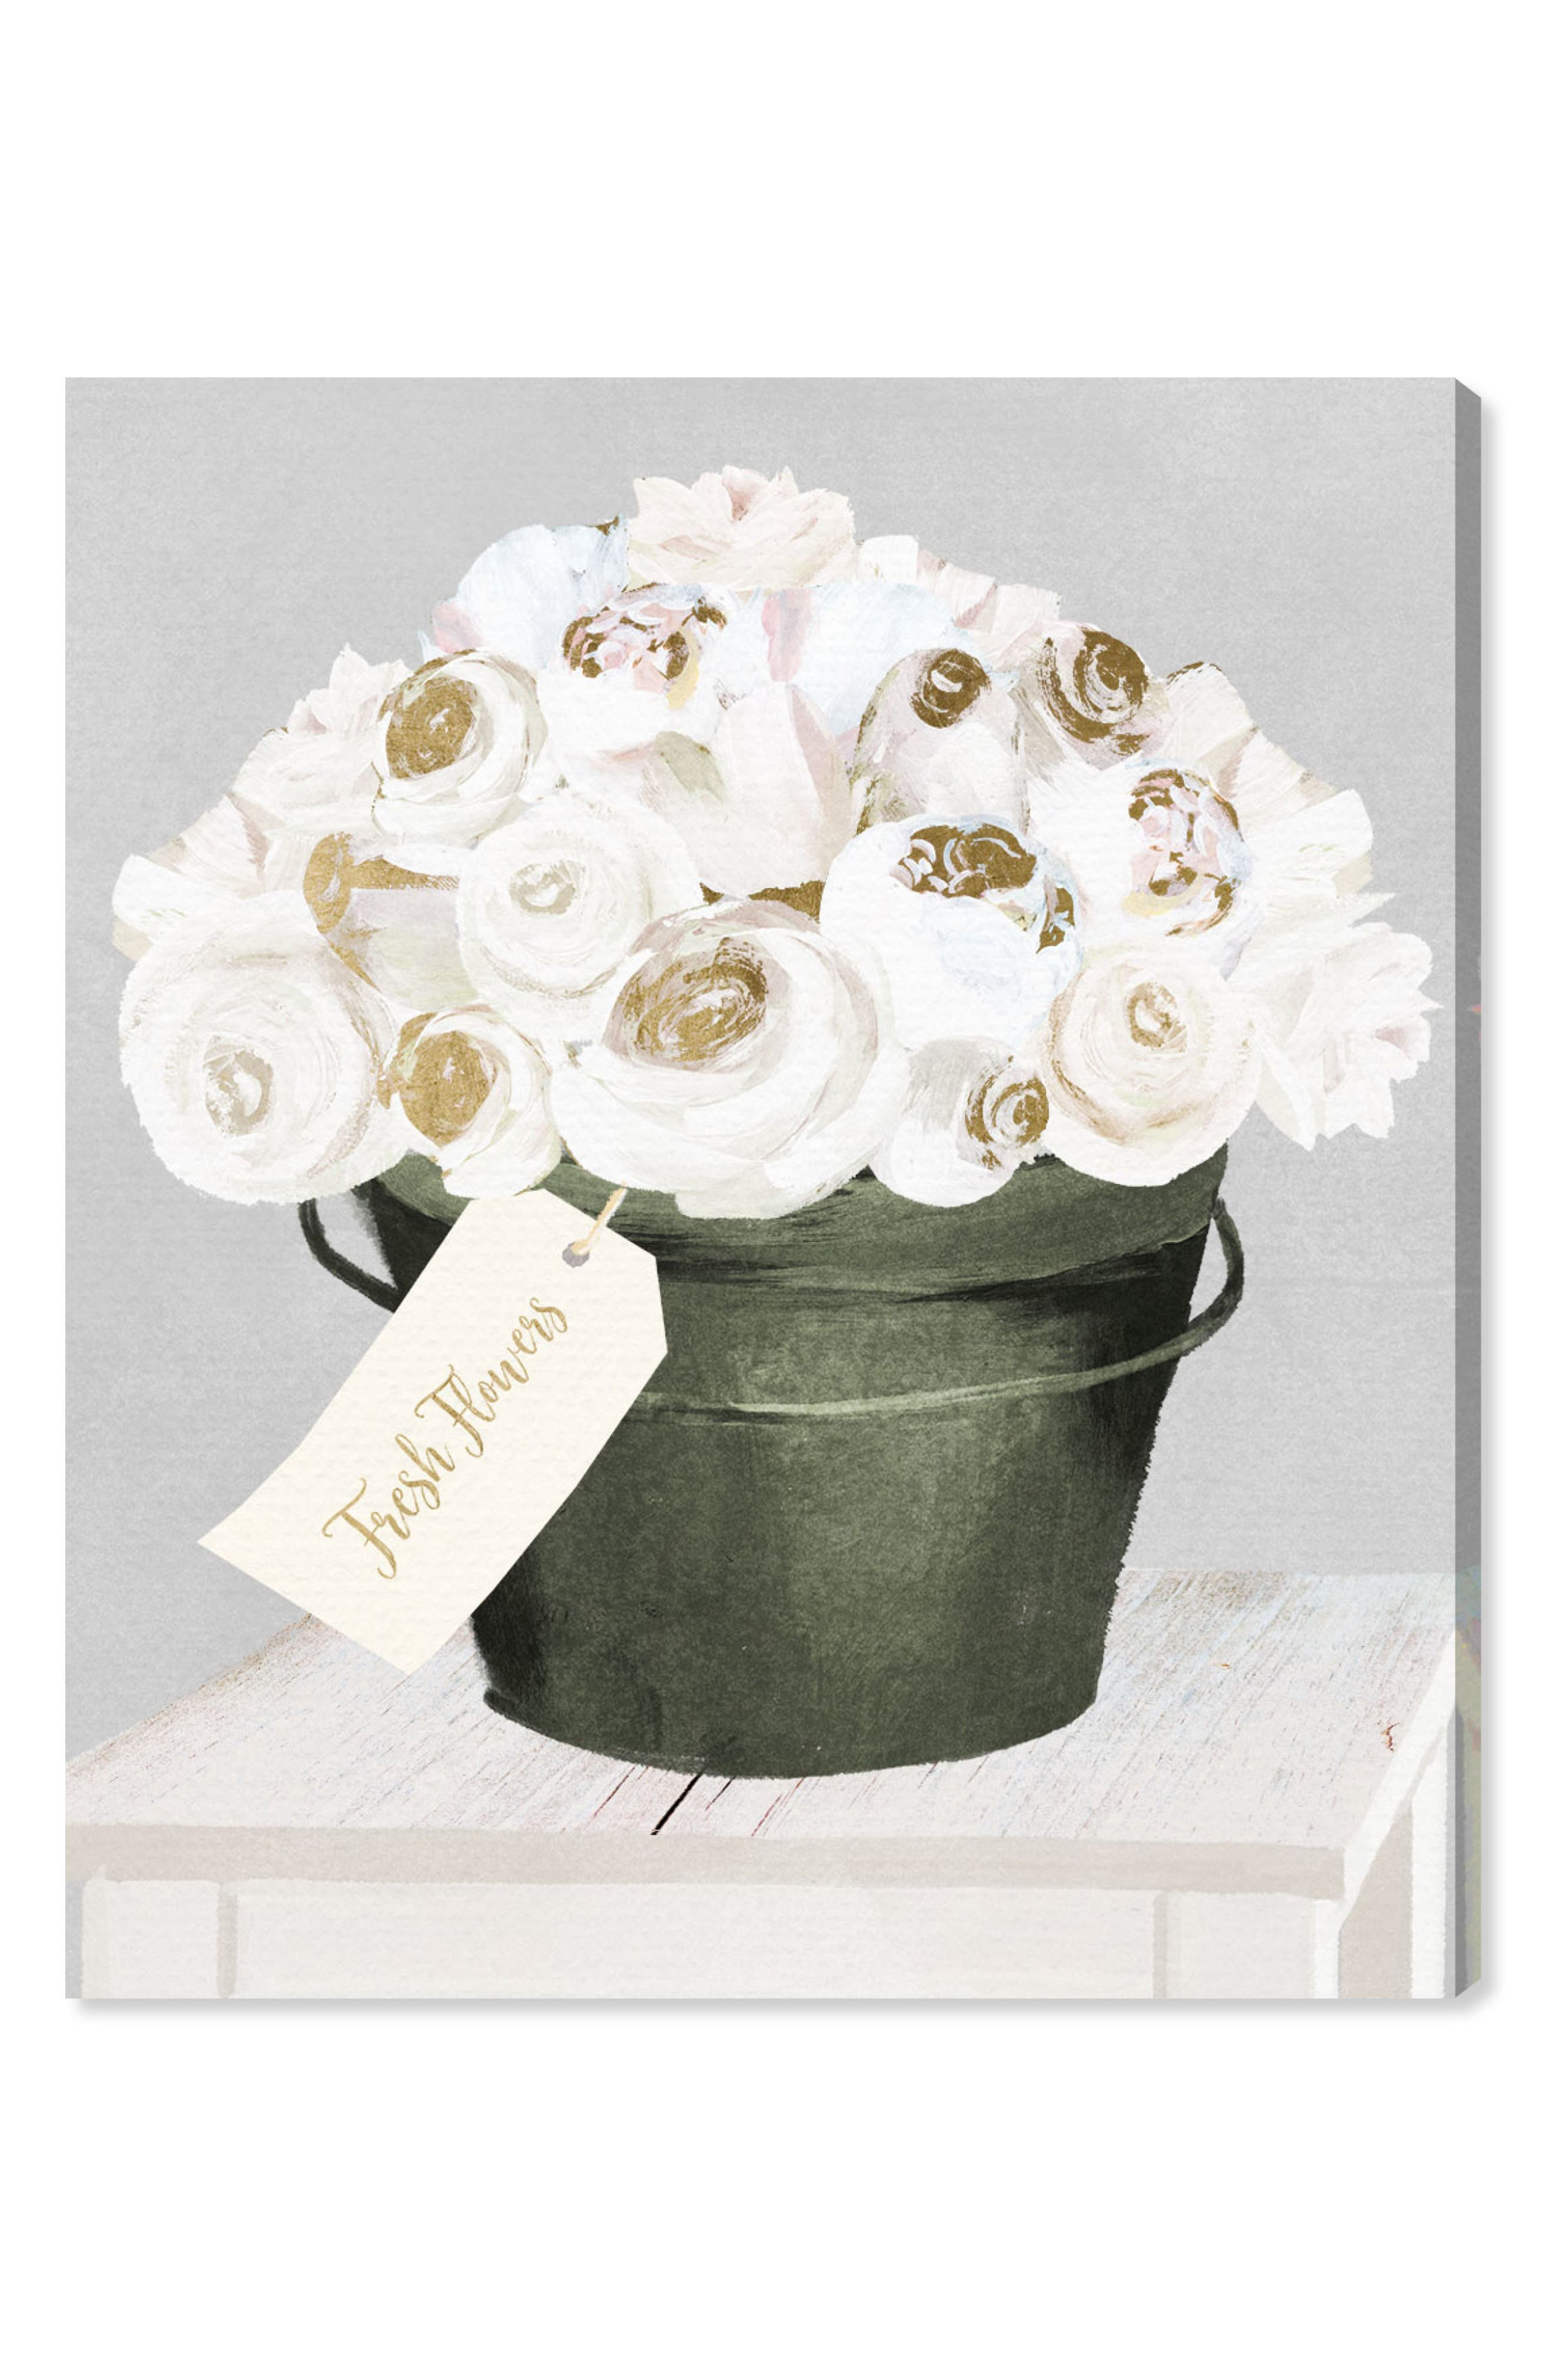 Main Image - Oliver Gal Bucket Full of Gold Roses Canvas Wall Art